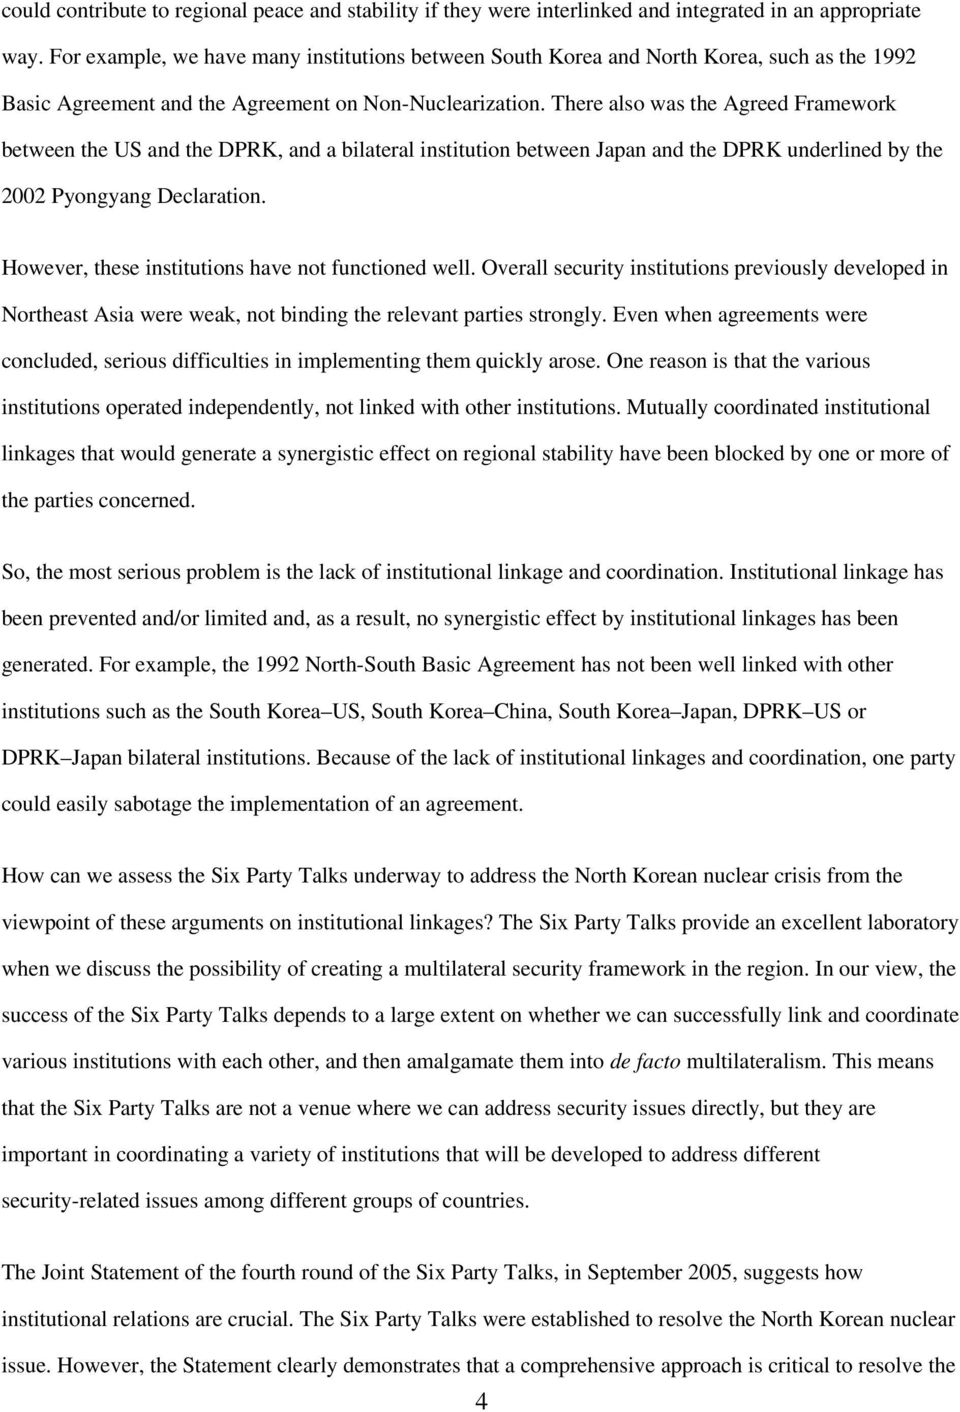 There also was the Agreed Framework between the US and the DPRK, and a bilateral institution between Japan and the DPRK underlined by the 2002 Pyongyang Declaration.